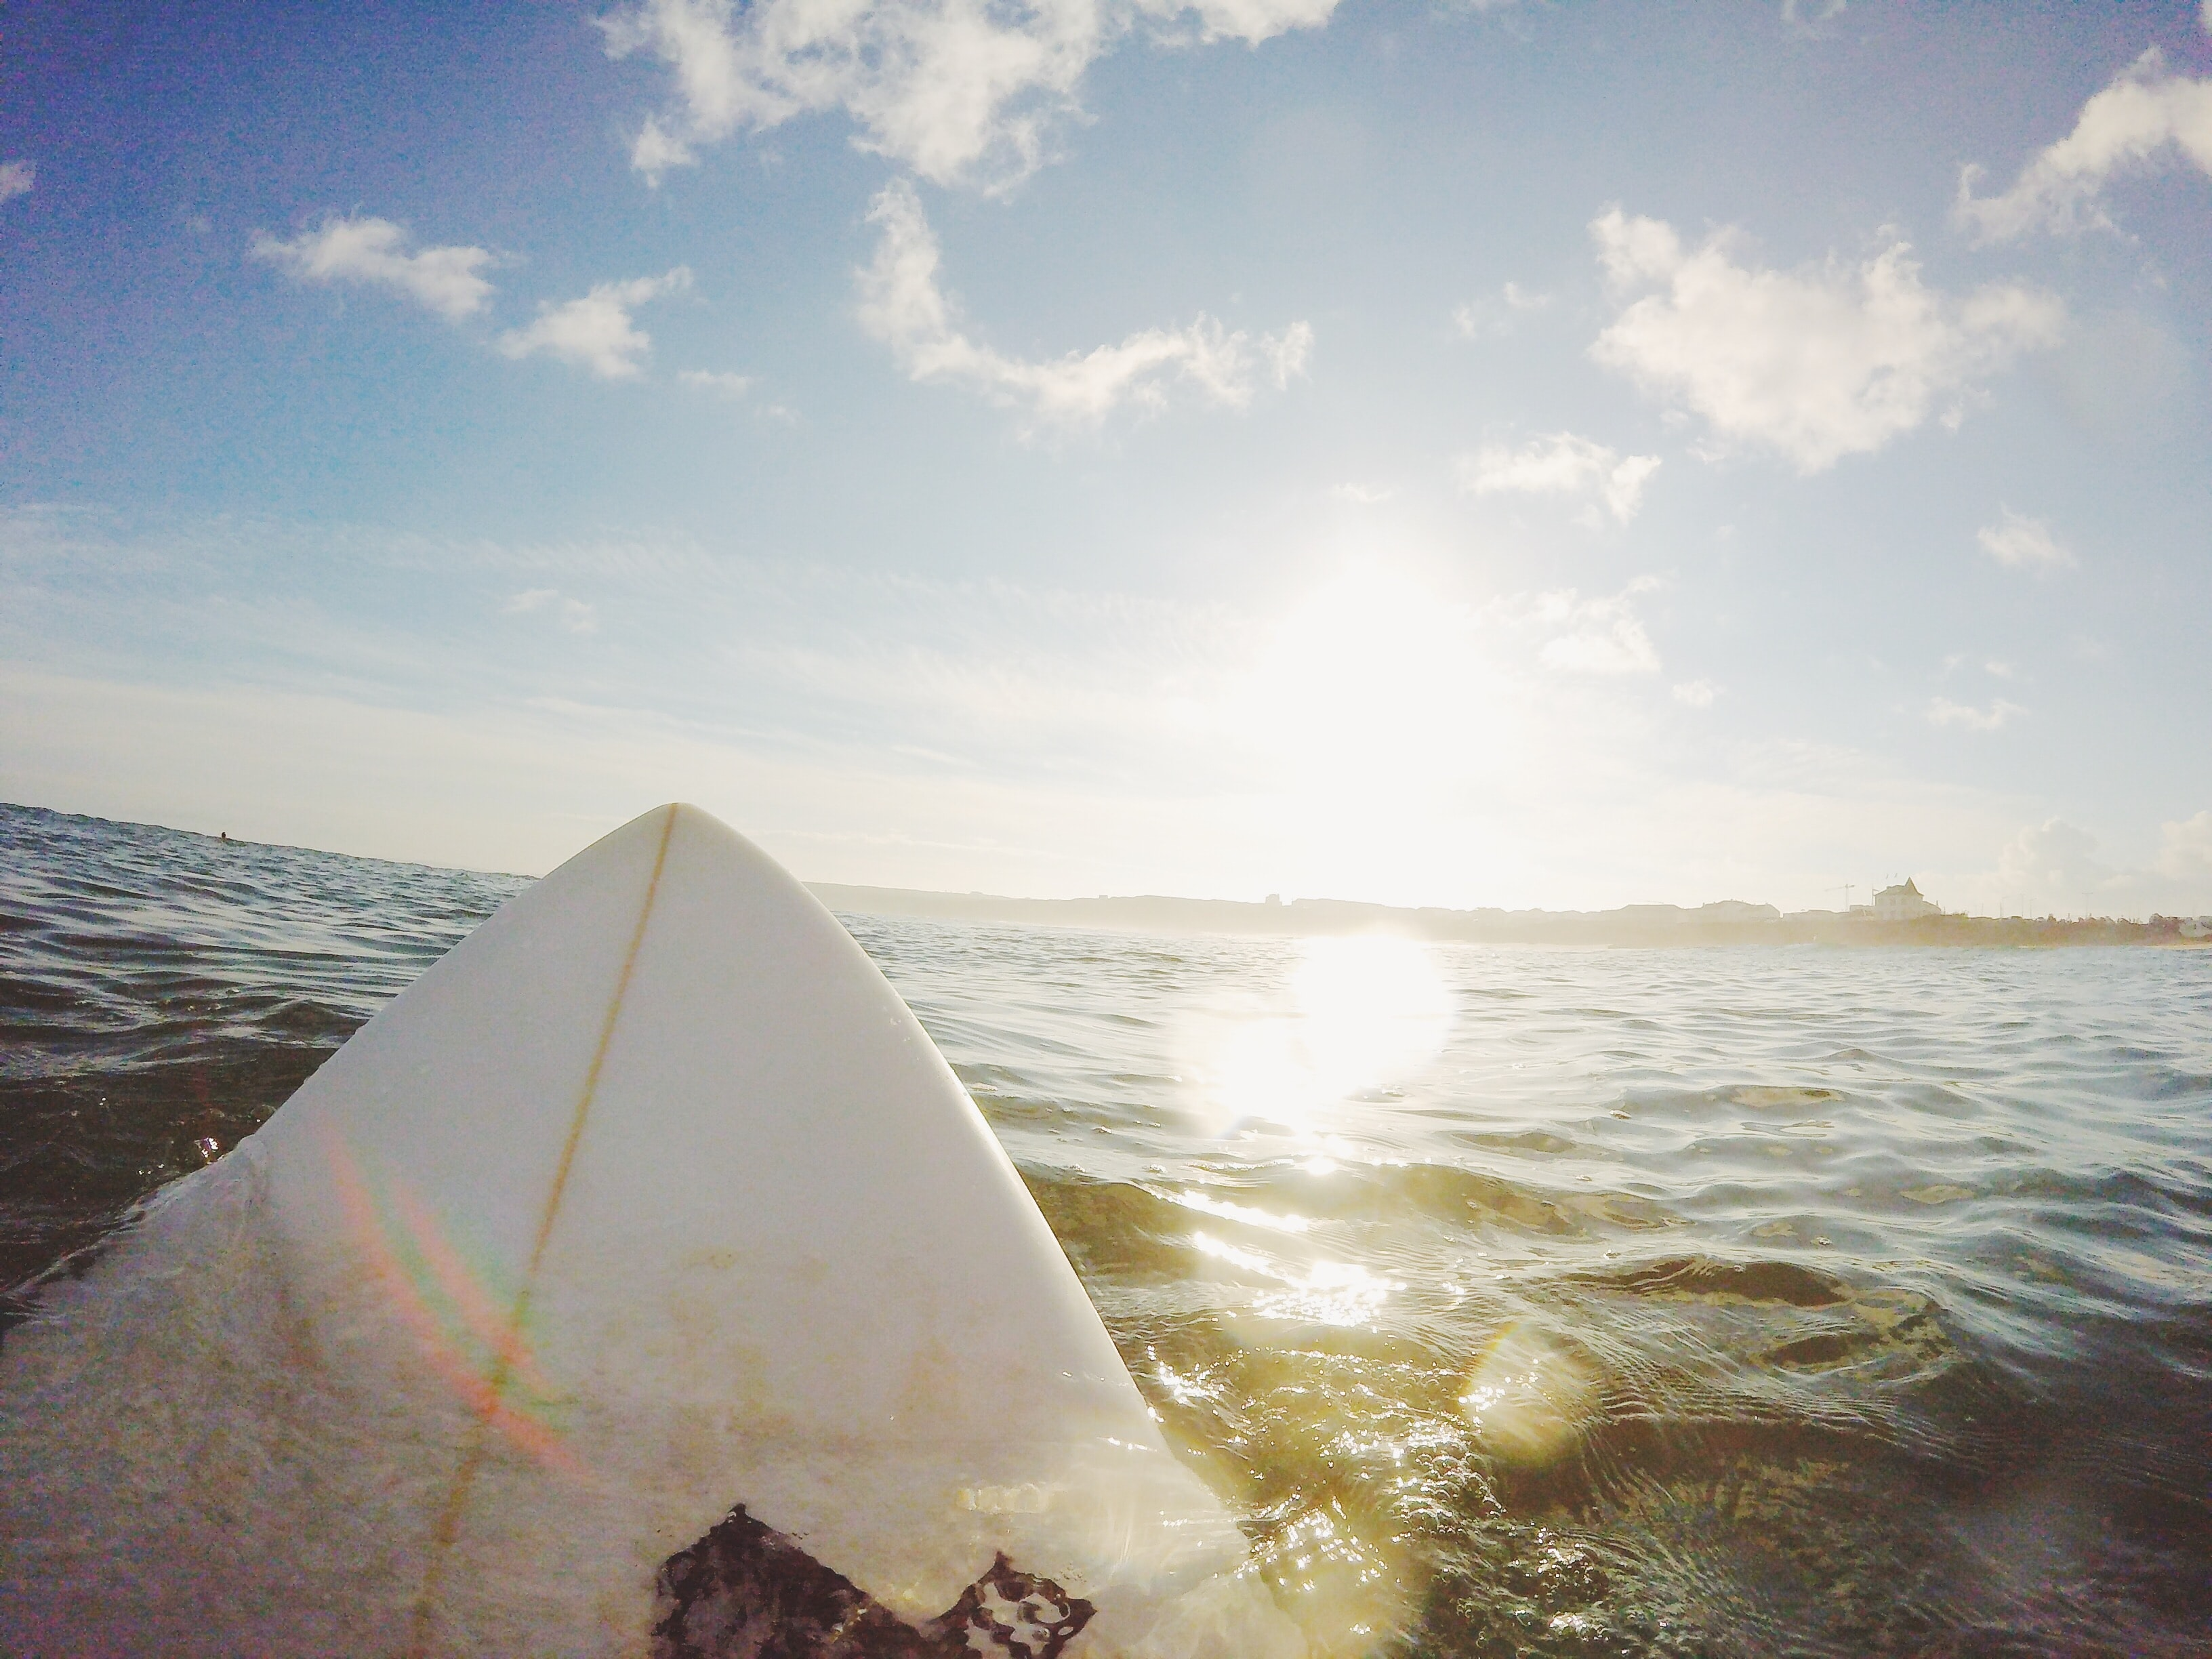 The front of a surfboard in the water facing the sun in Peniche